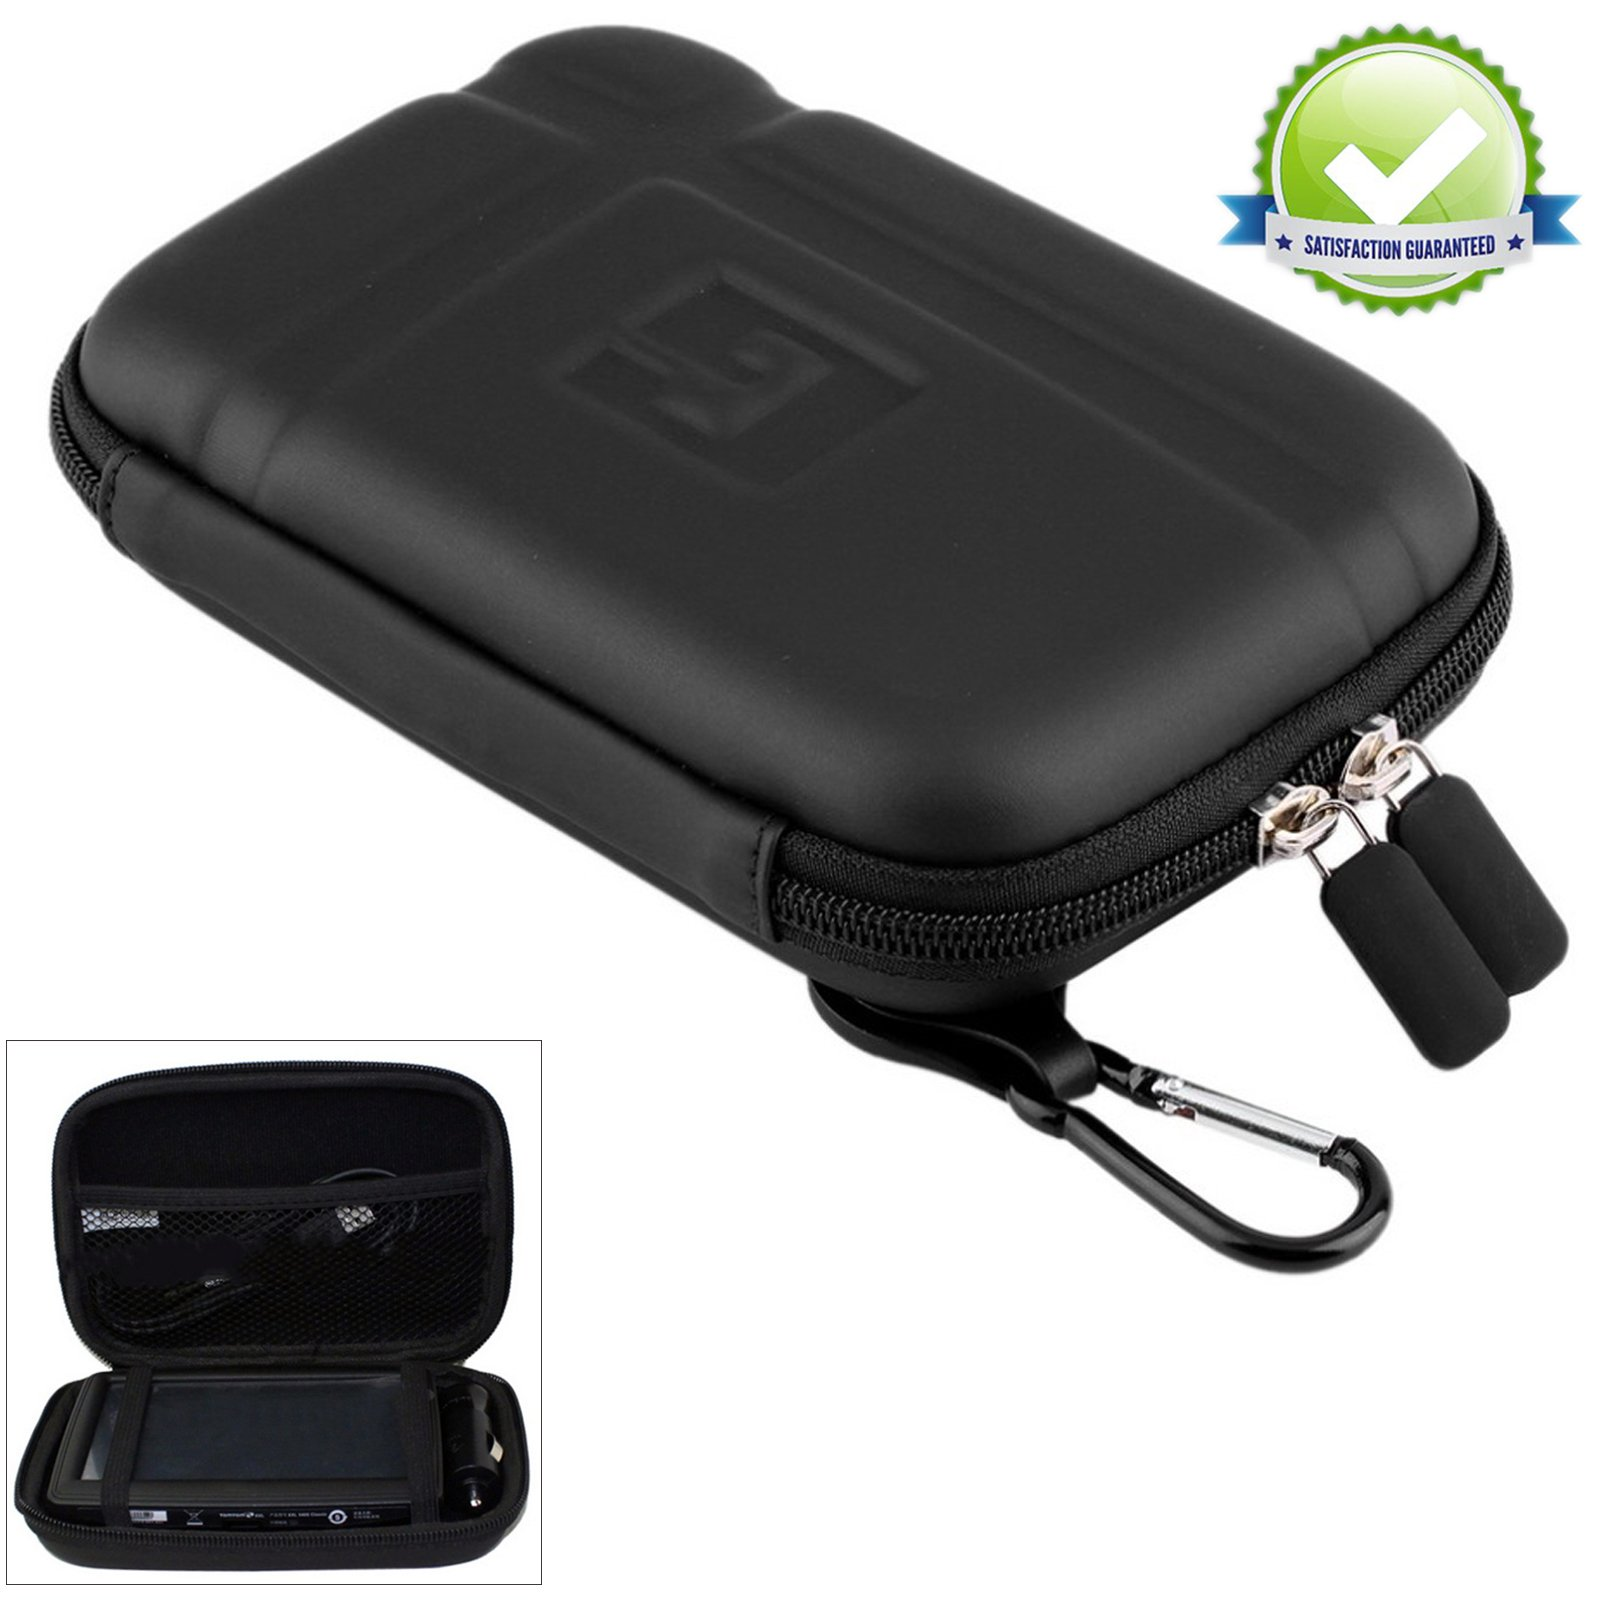 "5"" Inch Hard Carrying Case Travel GPS Protective Bag Cover Pouch Shell Zipper Case For 5"" 5.2"" TomTom Garmin Nuvi Magellan RoadMate Tomtom GPS Devices Black"